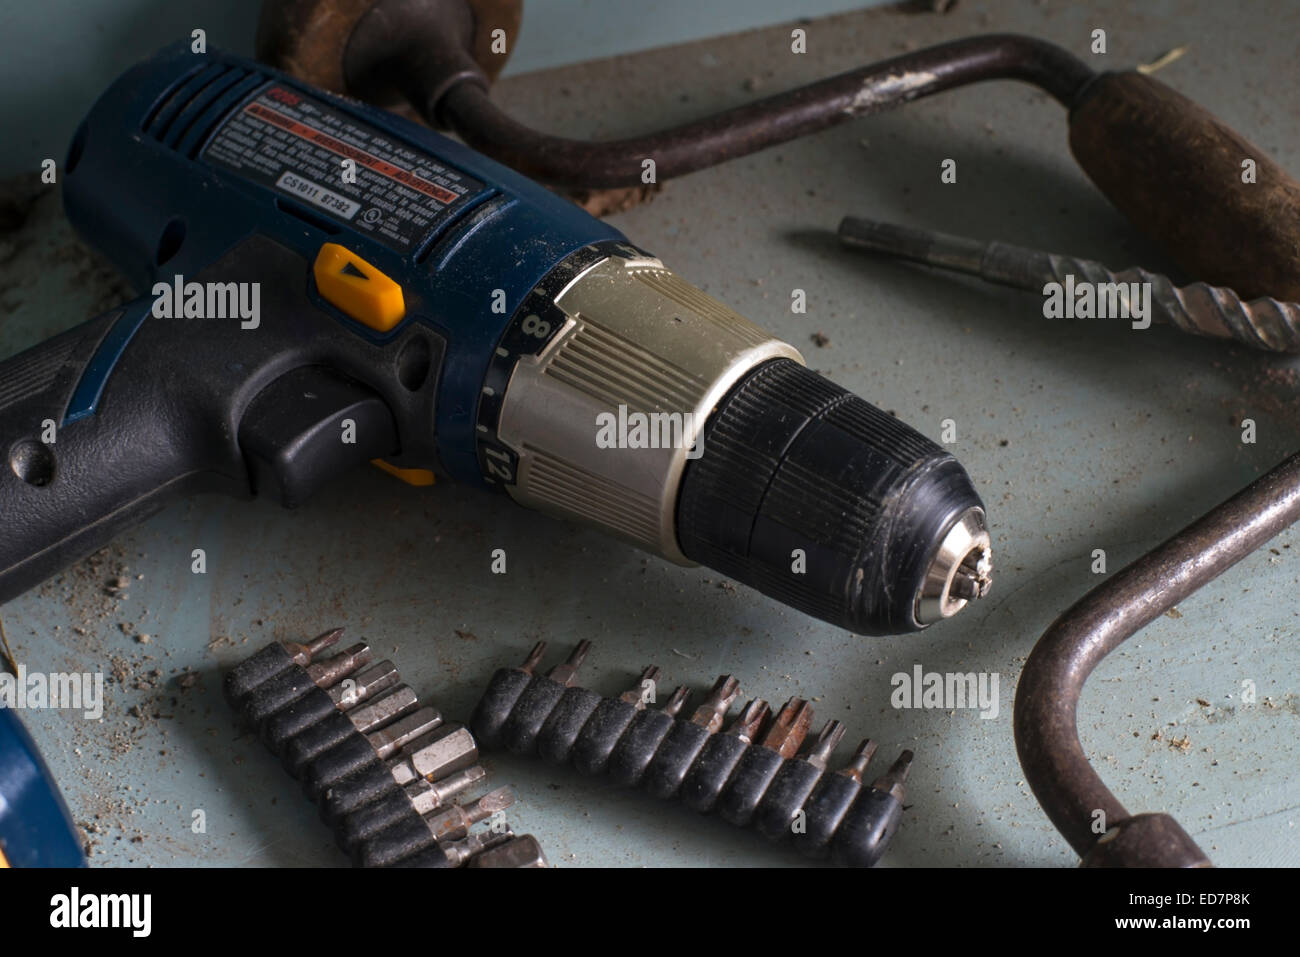 Old cordless drill that's no longer used - Stock Image